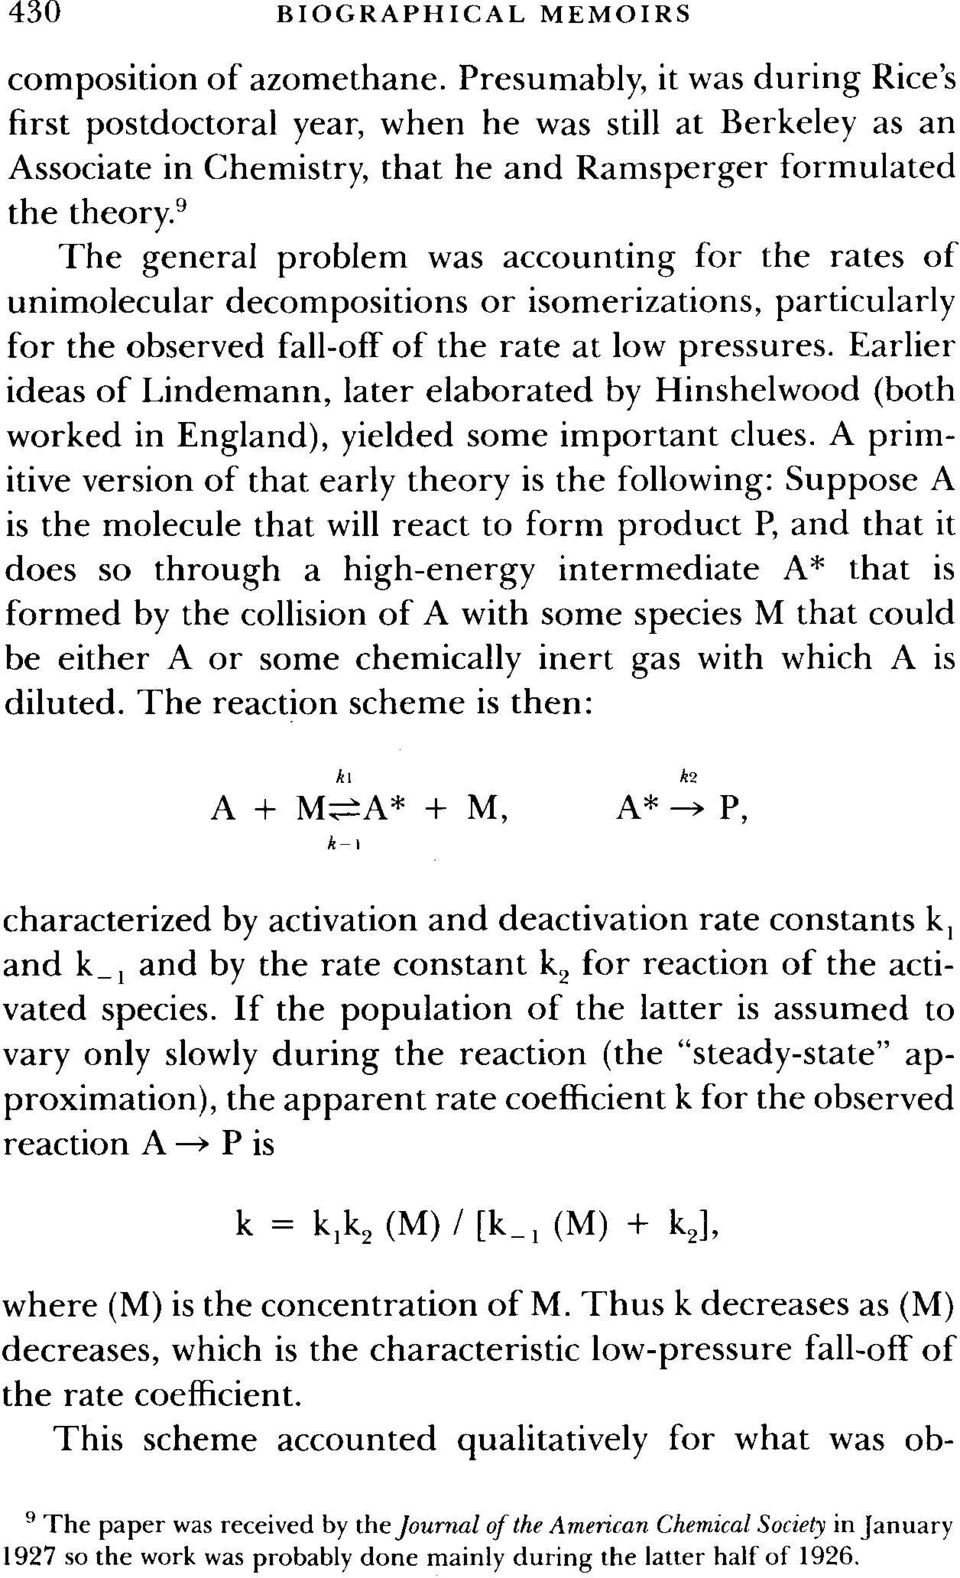 9 The general problem was accounting for the rates of unimolecular decompositions or isomerizations, particularly for the observed fall-off of the rate at low pressures.